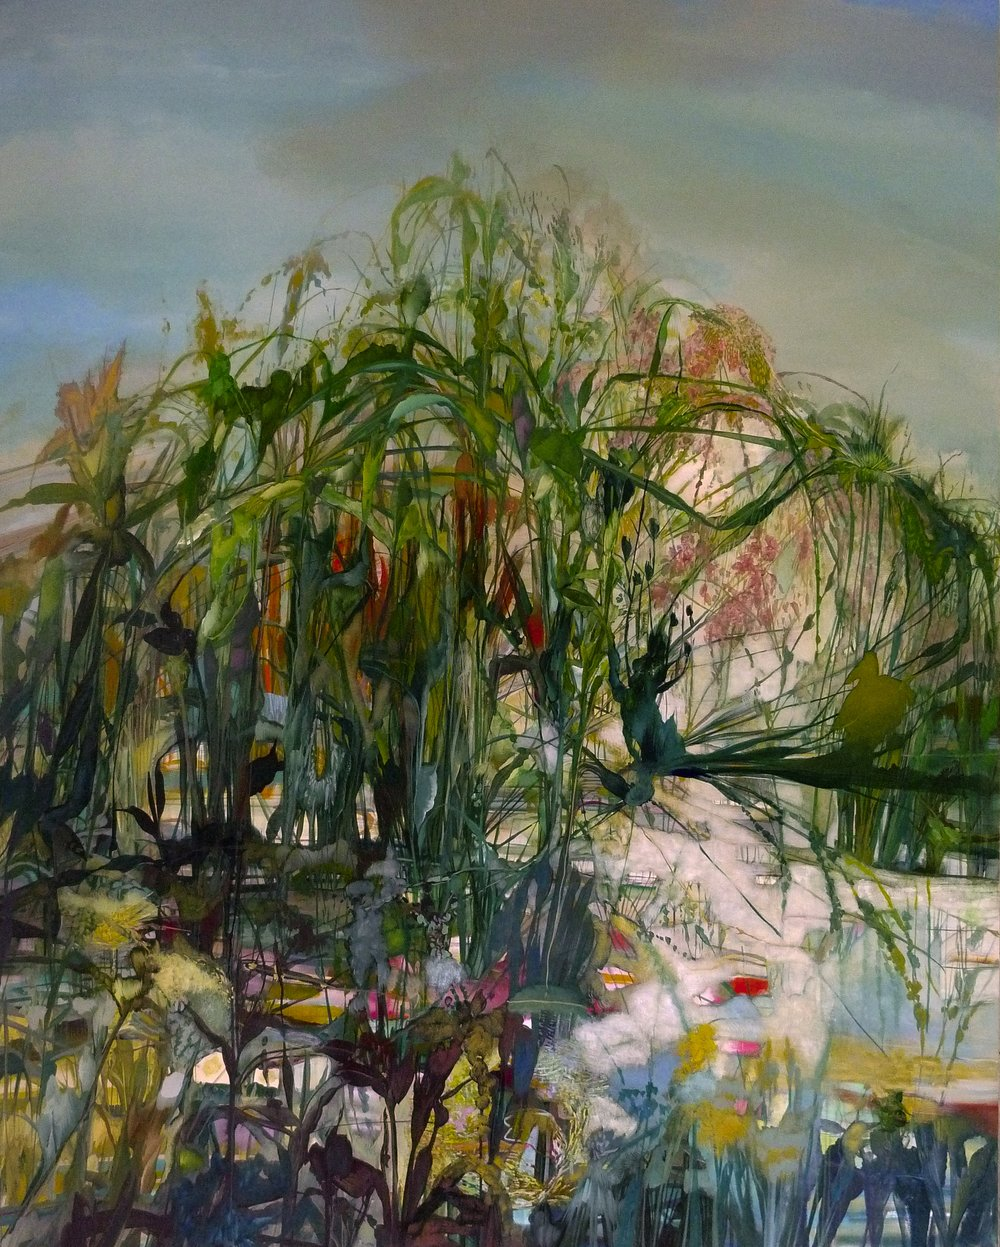 10.Shaking the twilight, Reeds Rain and Vapors, 2017, 84 x 66 inches, acrylic on canvas.jpg